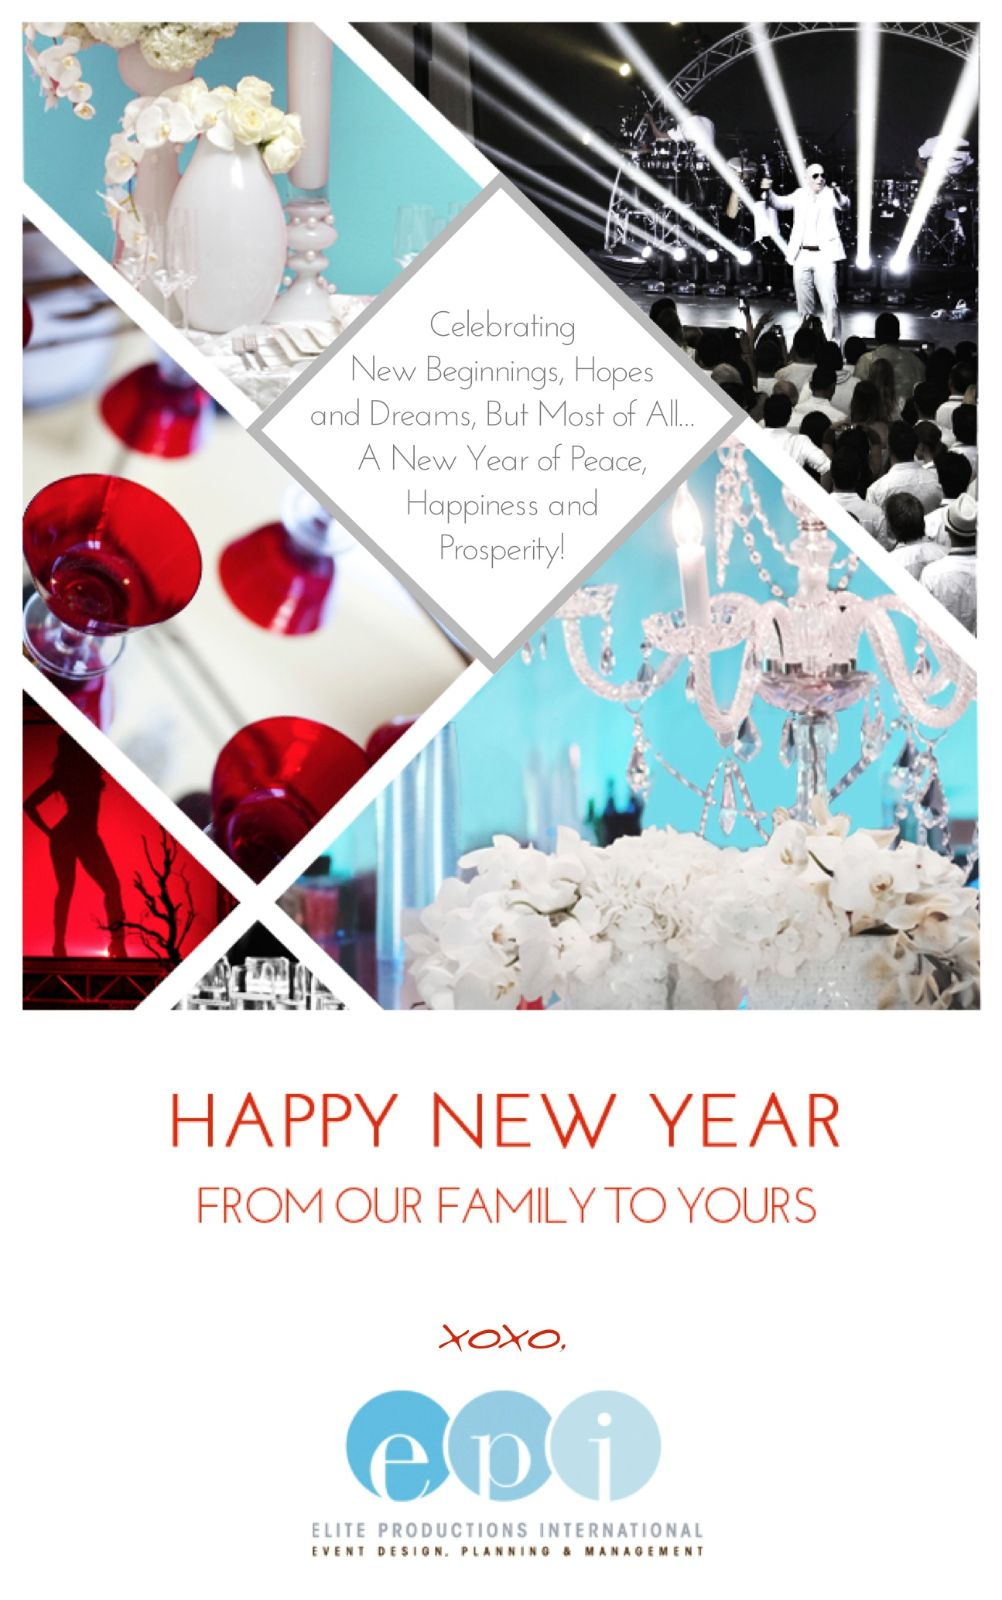 -Cheers to a Fabulous 2015. Thank you to all our followers and friends for making 2014 such an amazing year <3